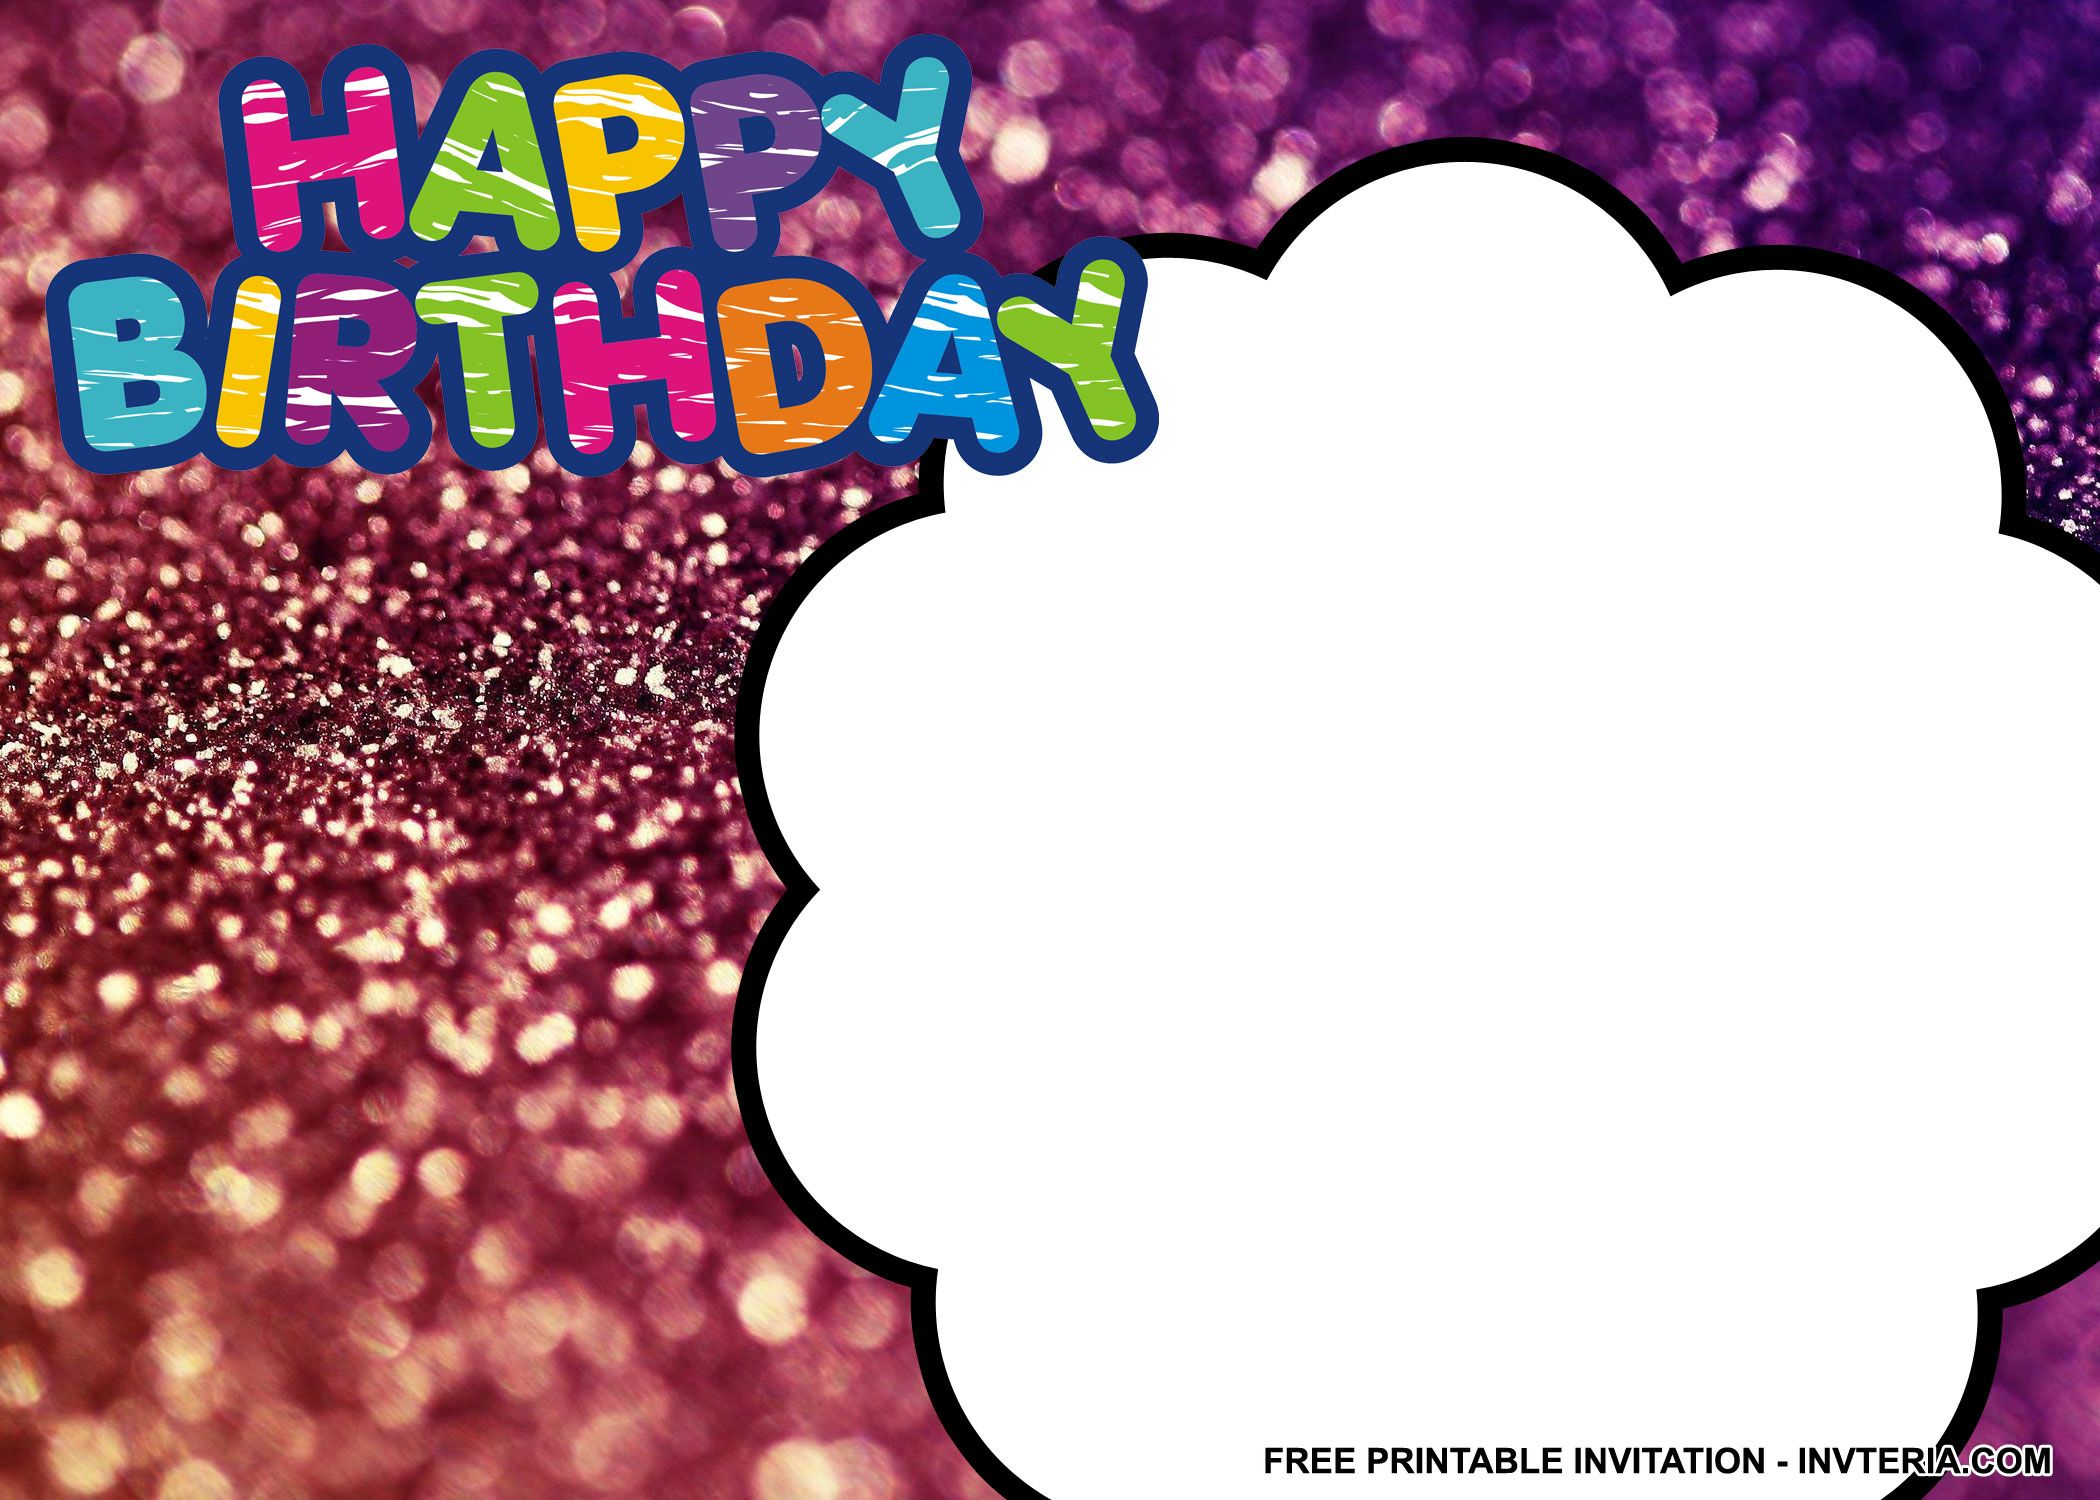 COOL BEST FREE PRINTABLE MAKE YOUR OWN BIRTHDAY INVITATIONS IDEA